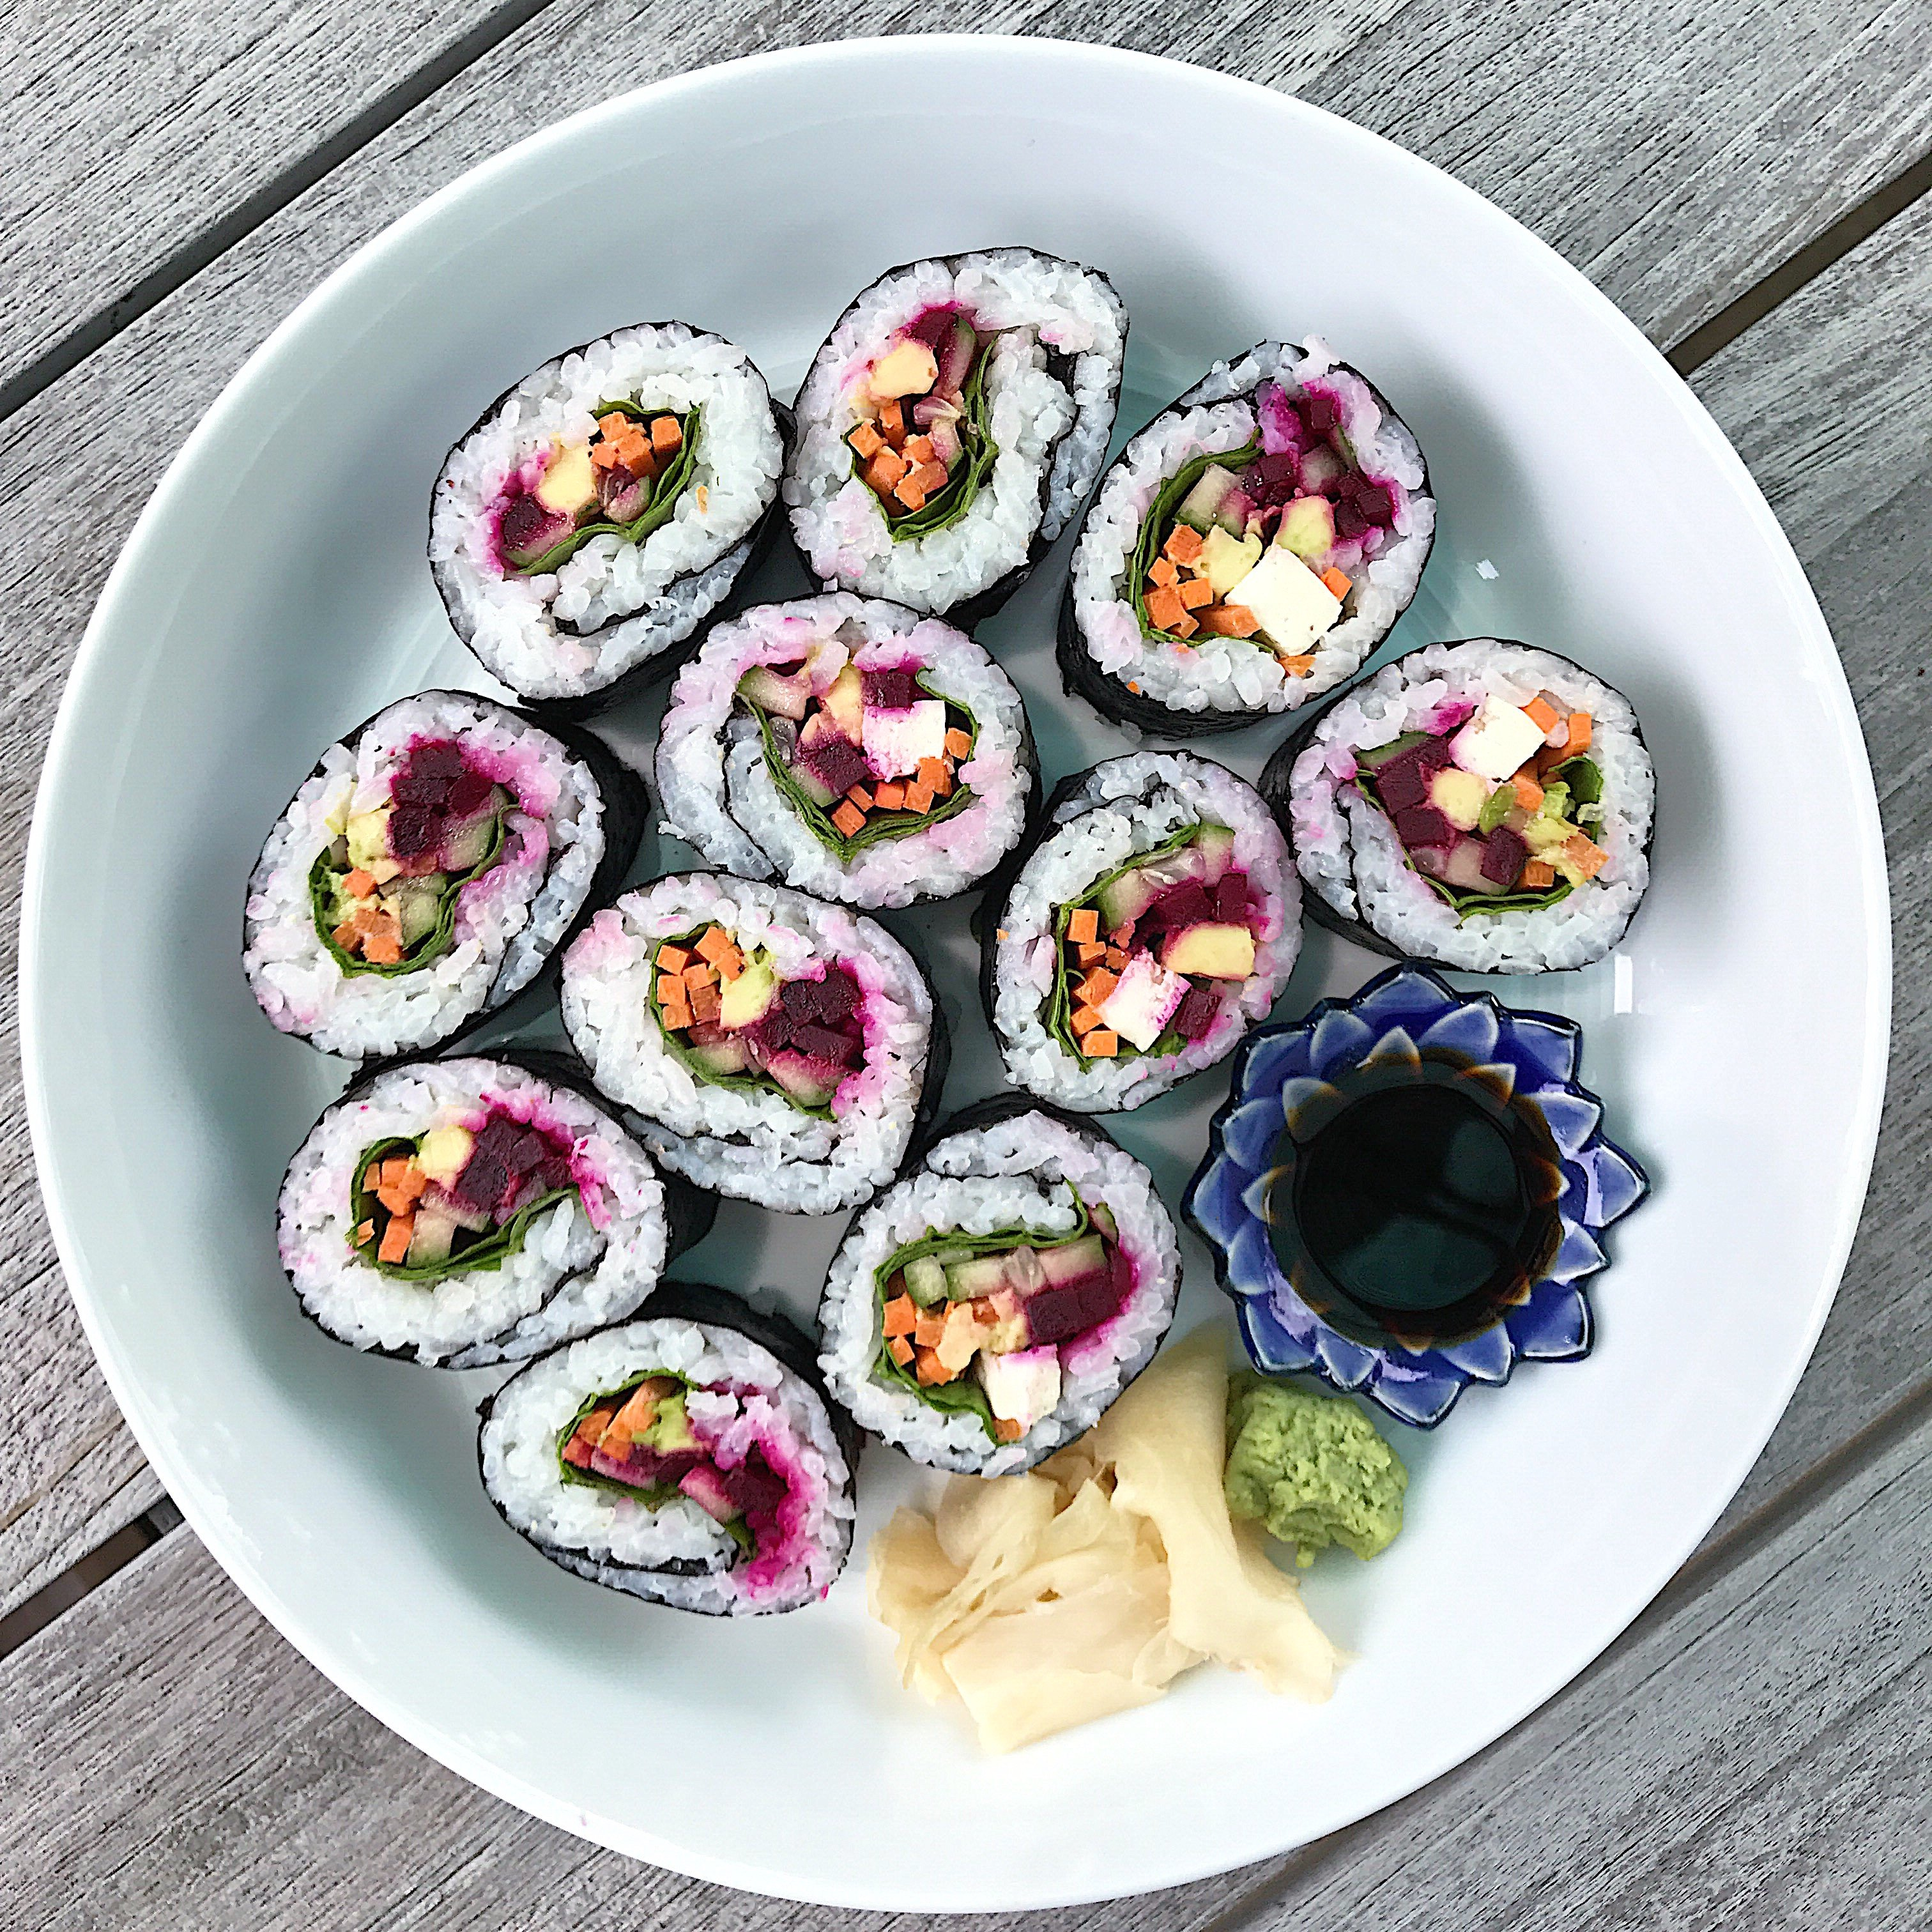 https://www.healthygffamily.com/recipe/red-white-bowl-veggie-sushi/